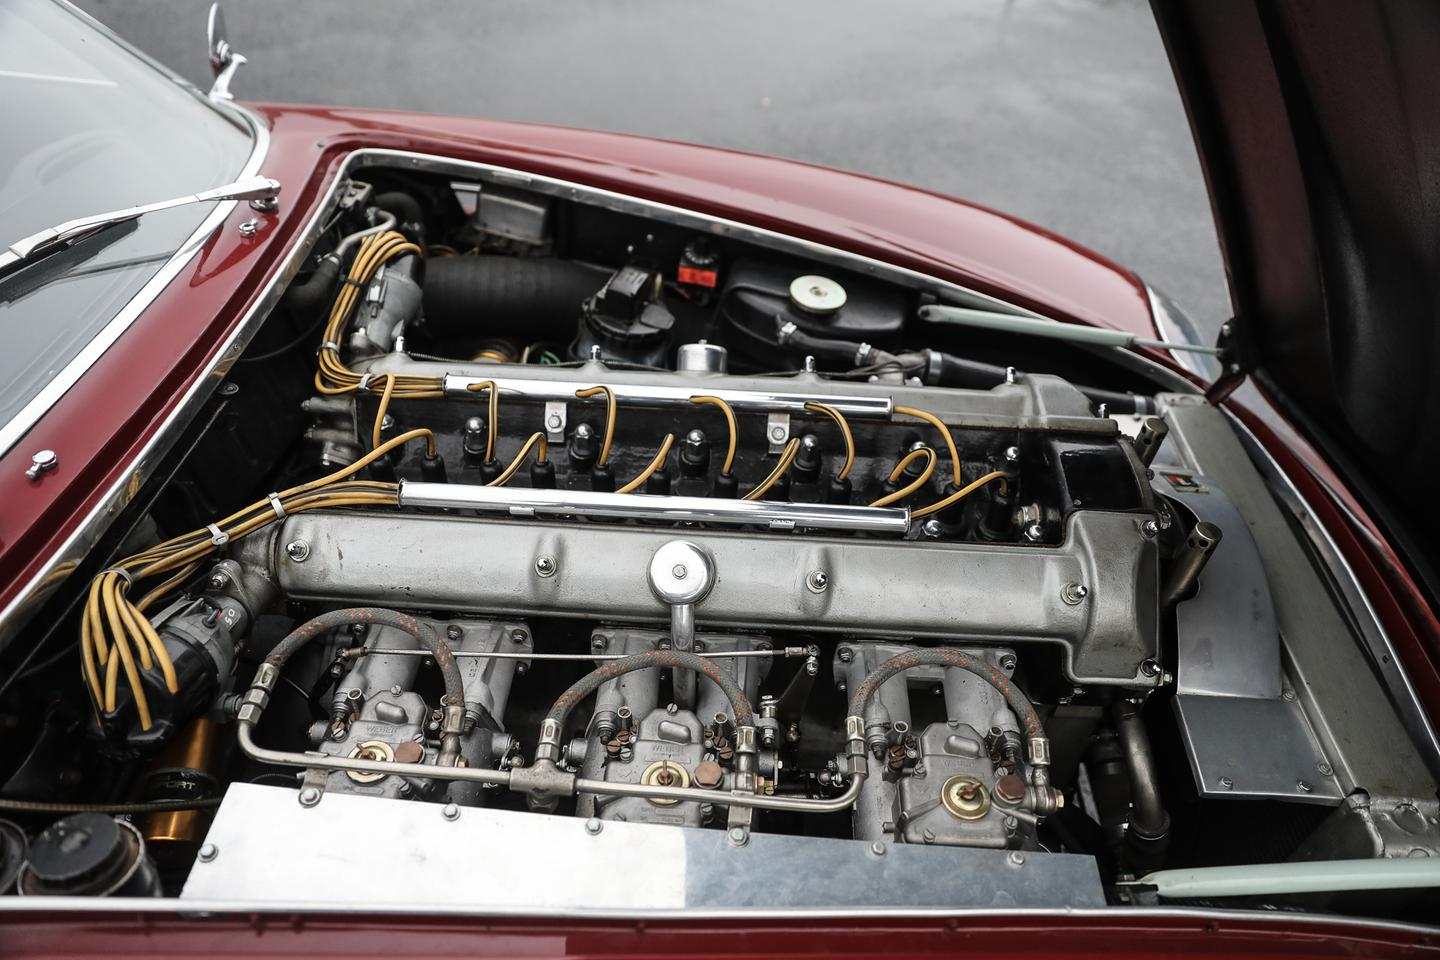 """One of just 19 Aston Martin DB4 GT Zagatos built, this 1961 model will go under the hammer at Gooding & Company's """"Passion of a Lifetime"""" auction at the Concours of Elegance at Hampton Court Palace on 5 September, 2020, with an official estimate of £7,000,000 to £9,000,000"""